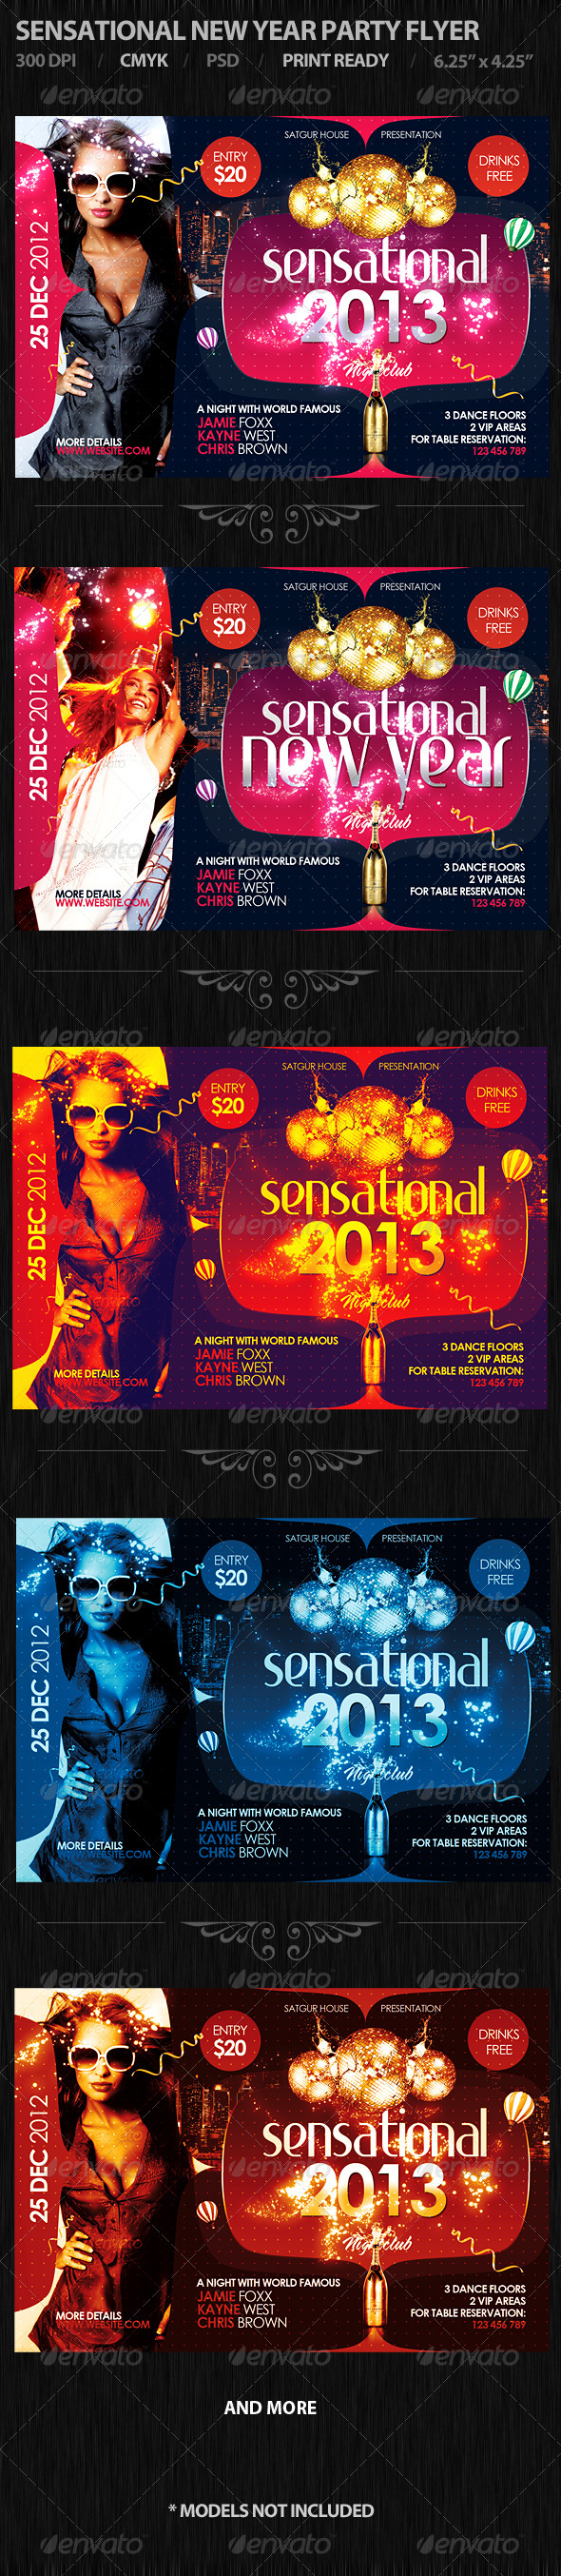 Sensational New Year Party Flyer - Flyers Print Templates